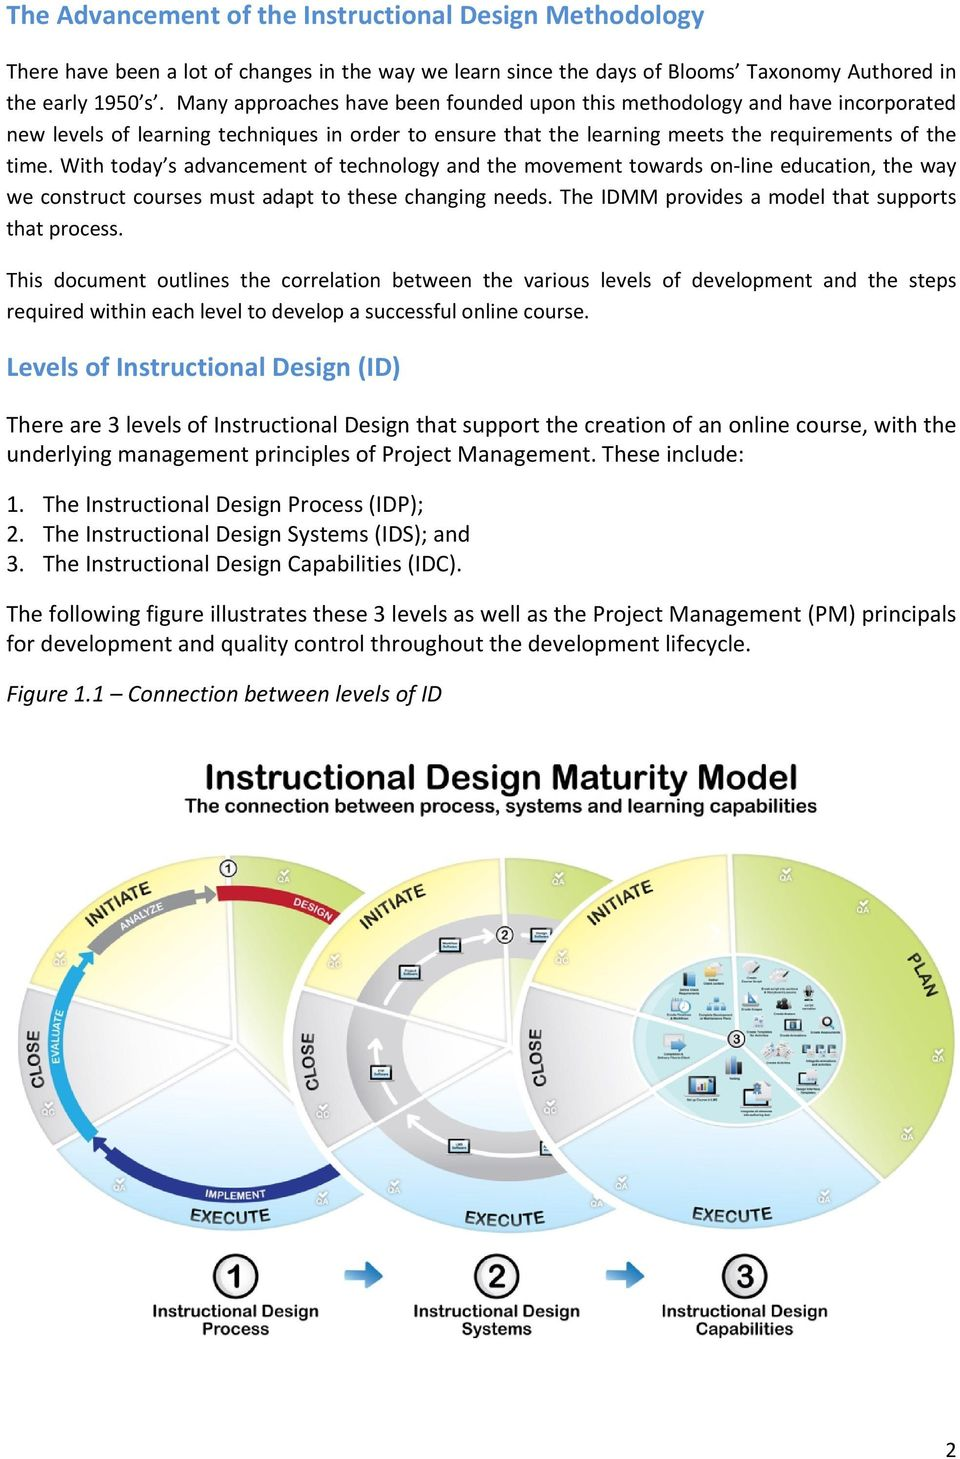 The Instructional Design Maturity Model Approach For Developing Online Courses Pdf Free Download